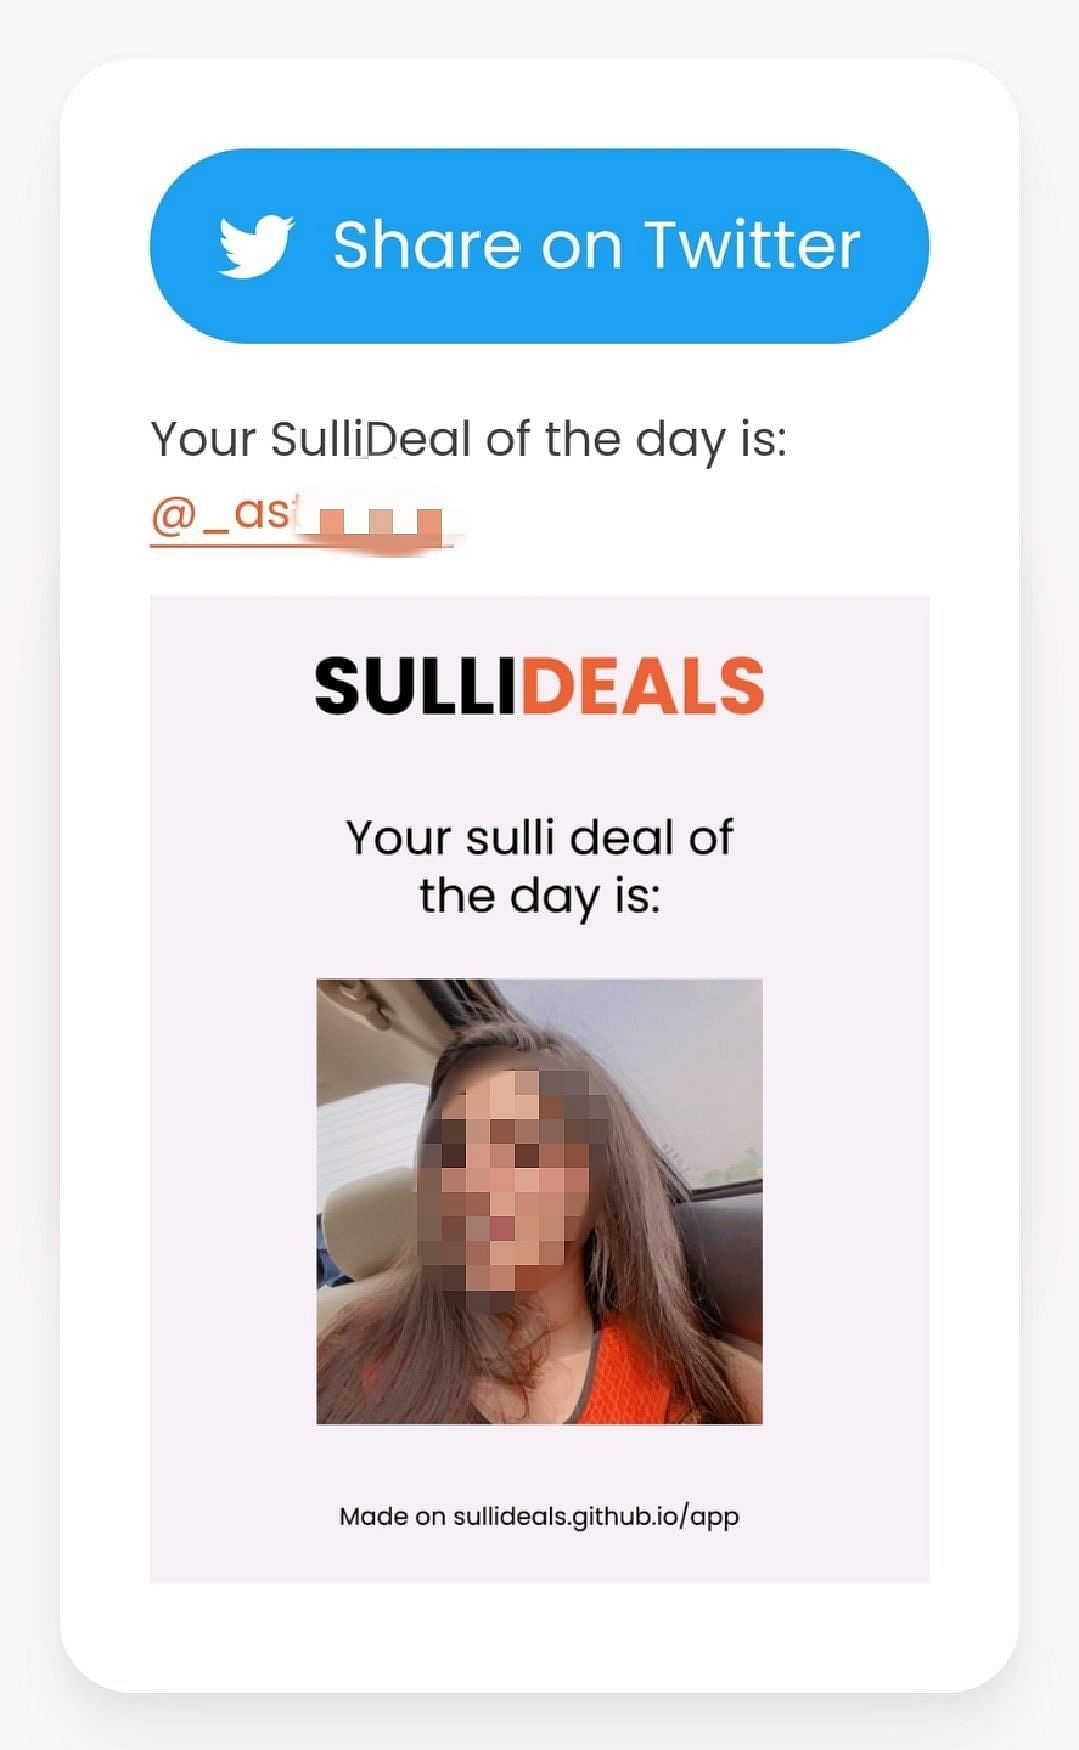 National Commission for Women takes suo moto cognisance after photos of Muslim women uploaded on 'Sulli deal' app